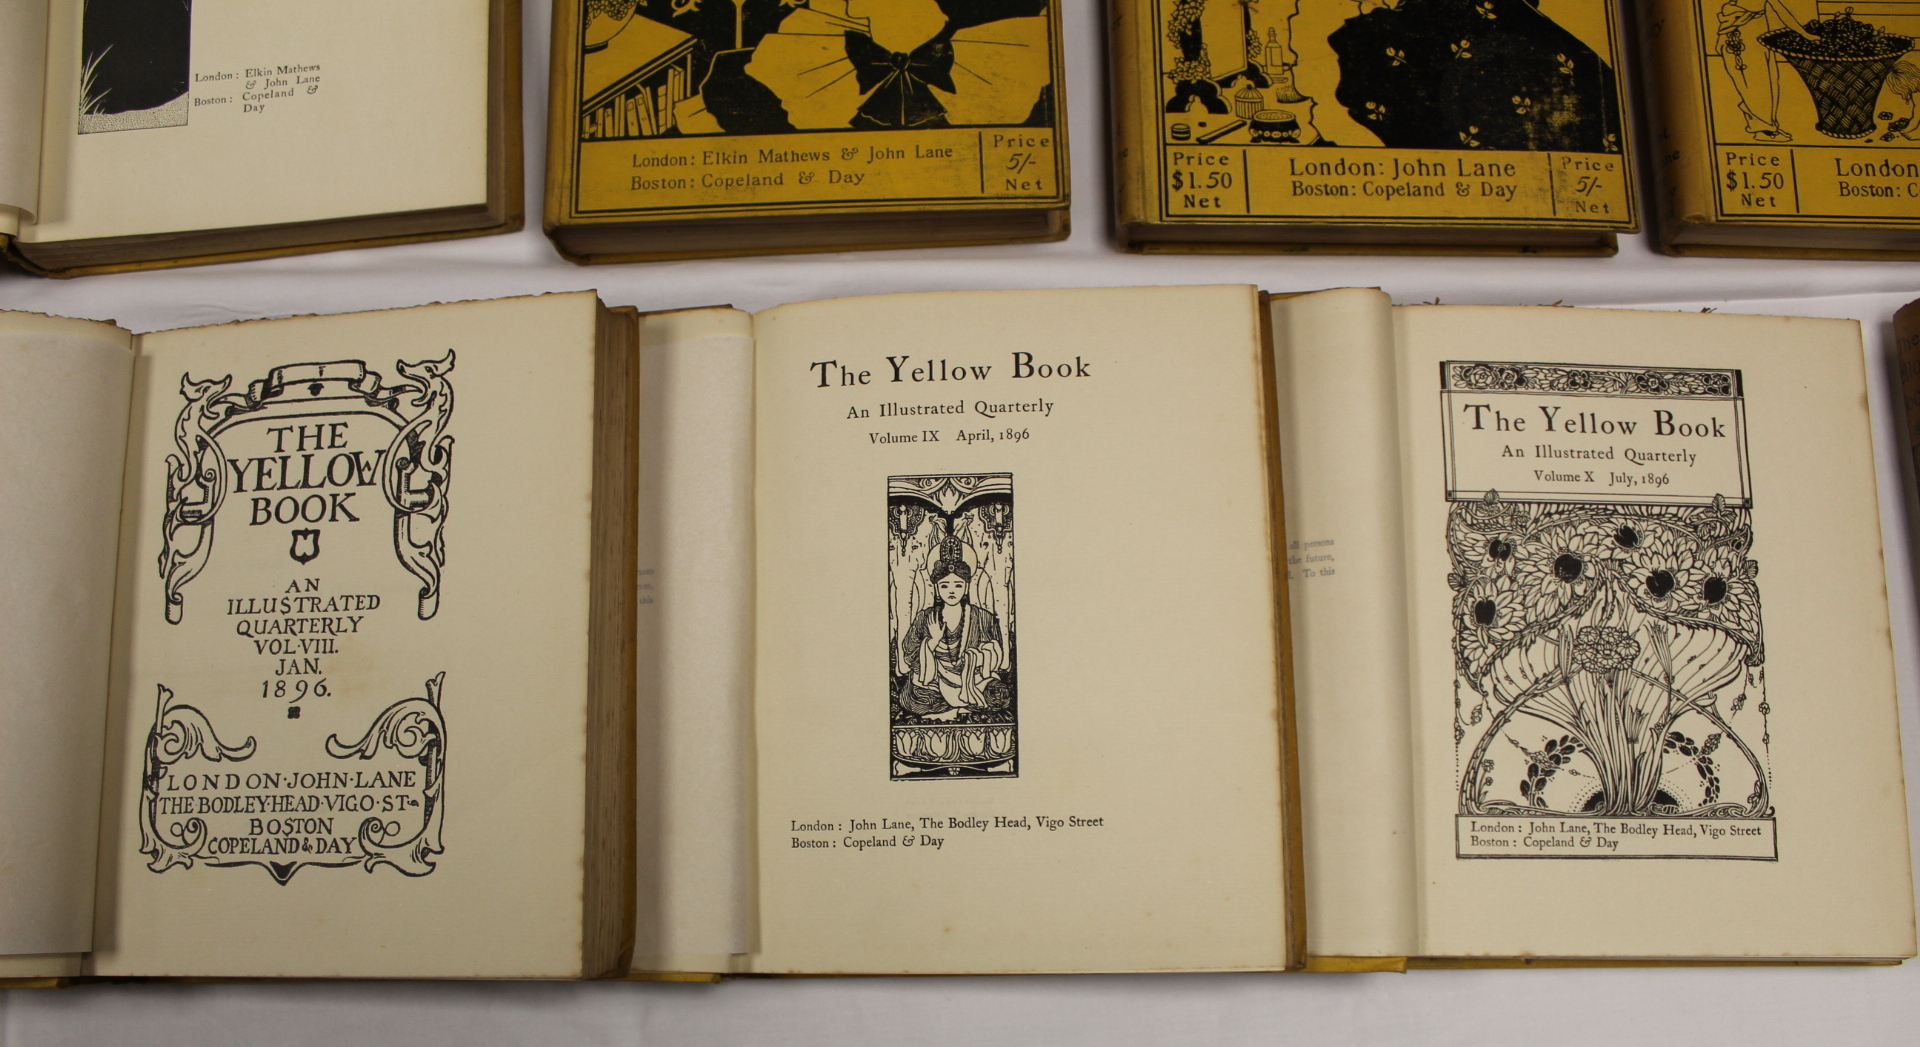 THE YELLOW BOOK.An Illustrated Quarterly. A set of 13 vols., many fine illus. Small quarto. - Image 11 of 45